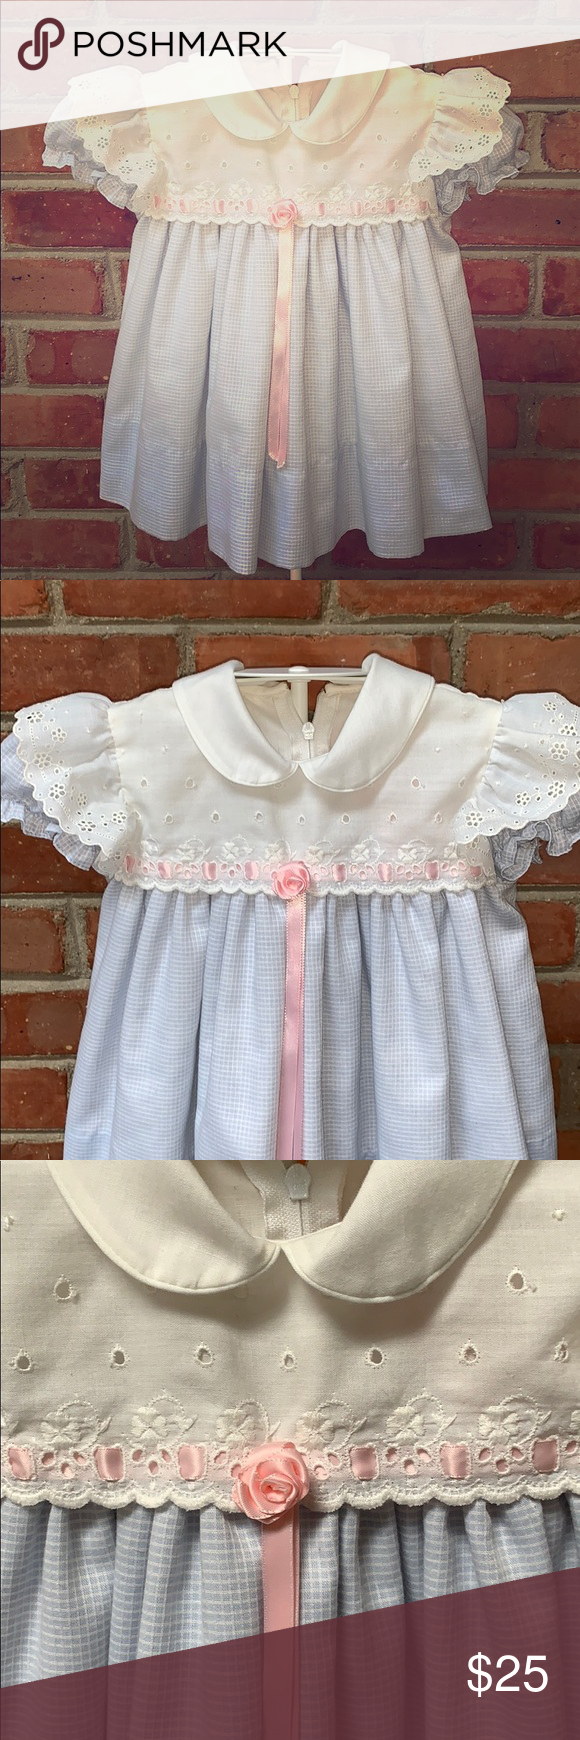 9229ceddd C. I. Castro Peter Pan collar dress, worn once 🌸🐇Perfect Easter Dress! 🐣  🐰 Beautifully made light blue and white gingham check with pink bow and  rose, ...